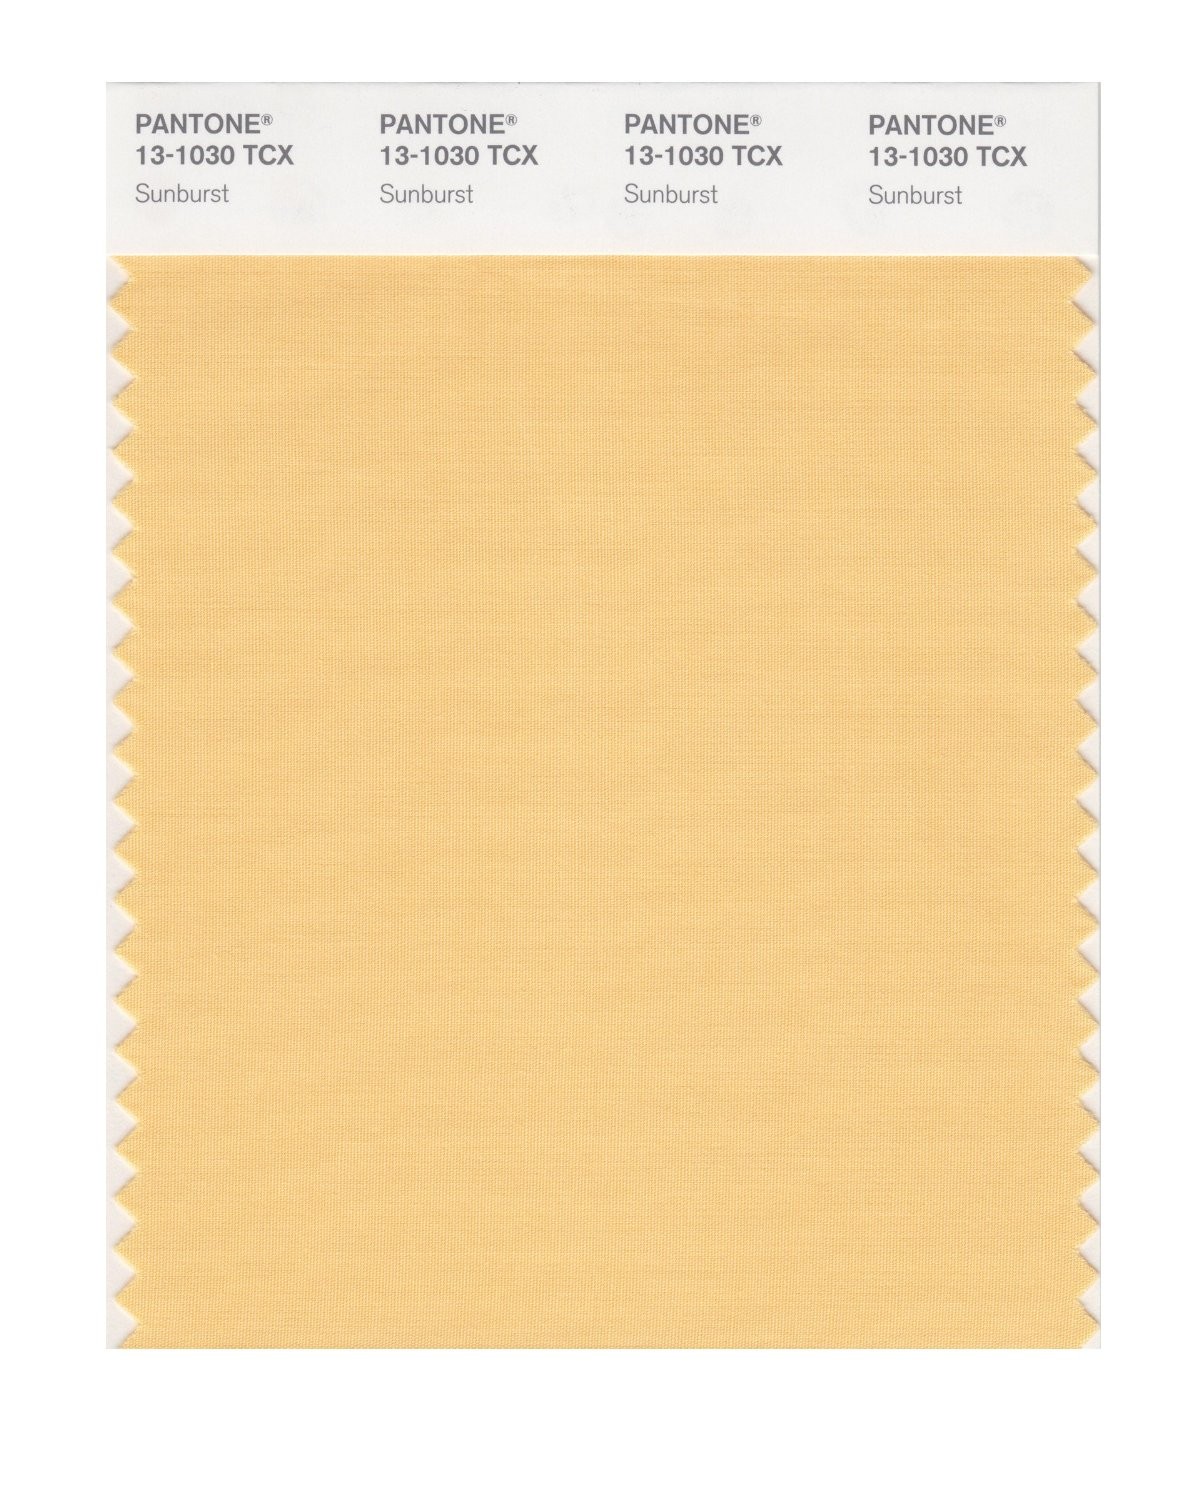 Pantone Smart Swatch 13-1030 Sunburst